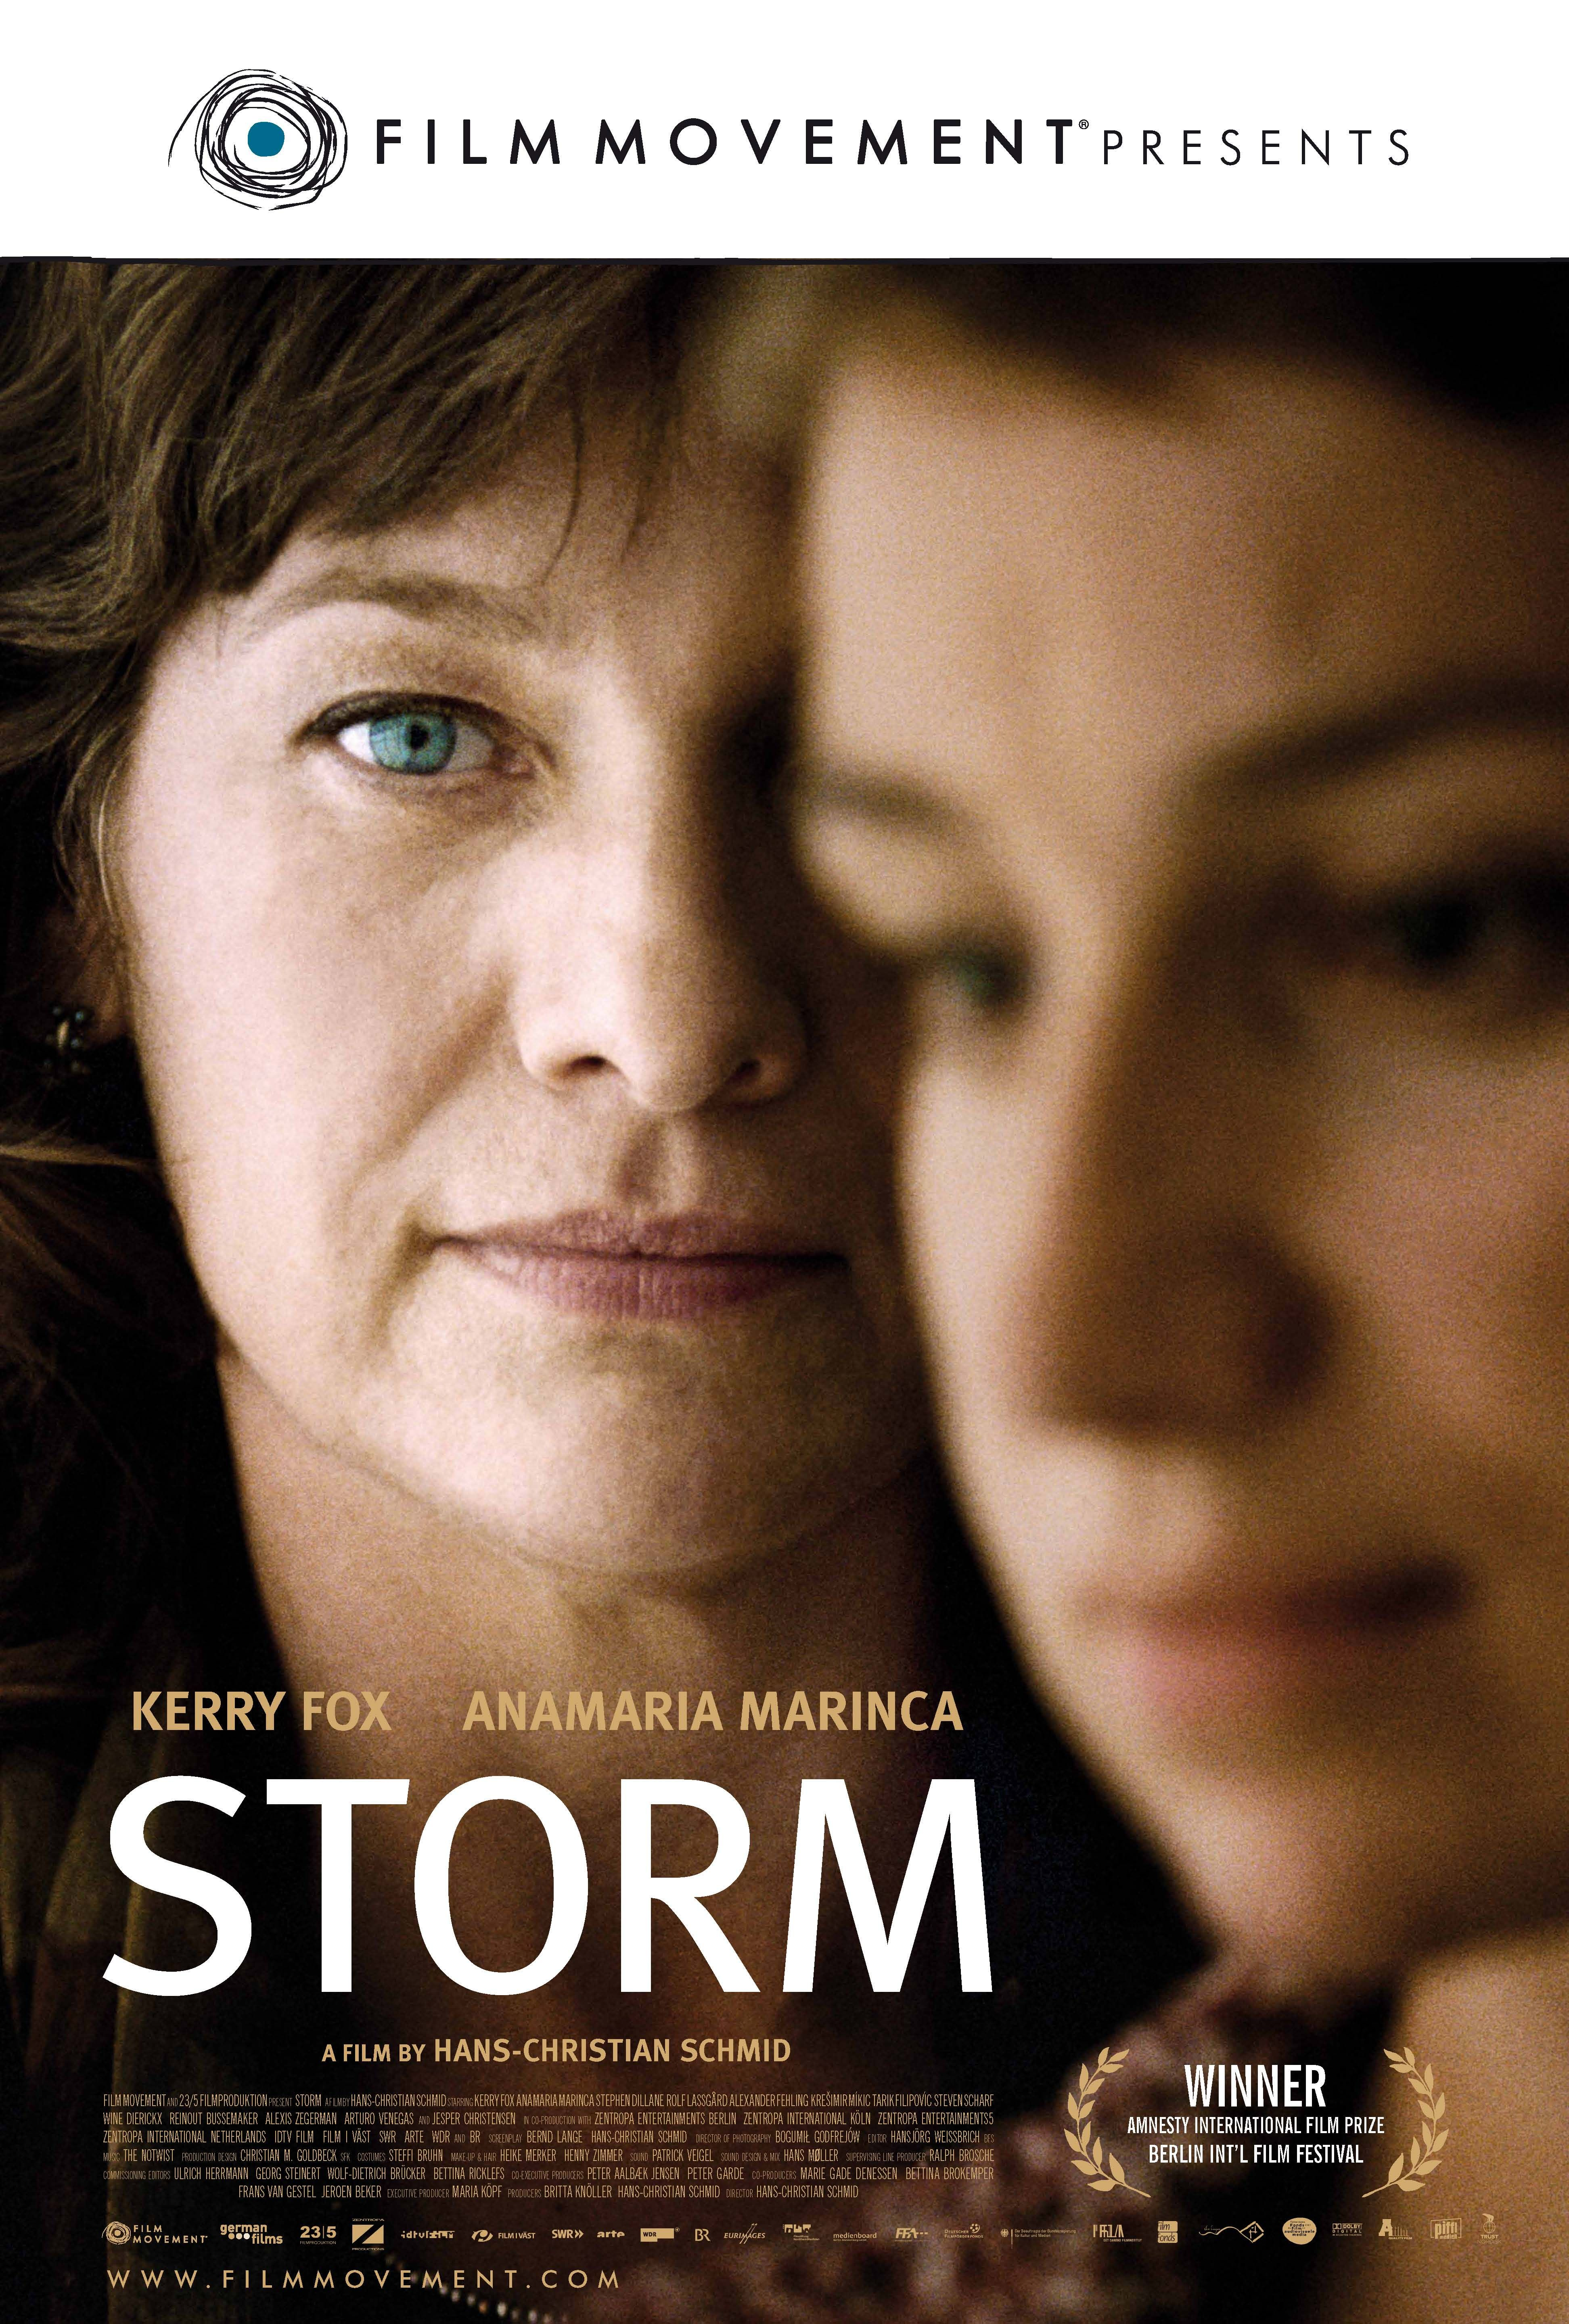 """Storm - Hans-Christian Schmid 2009 - DVD04449 -- """"Hannah Maynard, a prosecutor of Hague's Tribunal for war crimes in former Yugoslavia, charges a Serbian commander for killing Bosniaks. However, her main witness might be lying, so the court sends a team to Bosnia to investigate."""""""